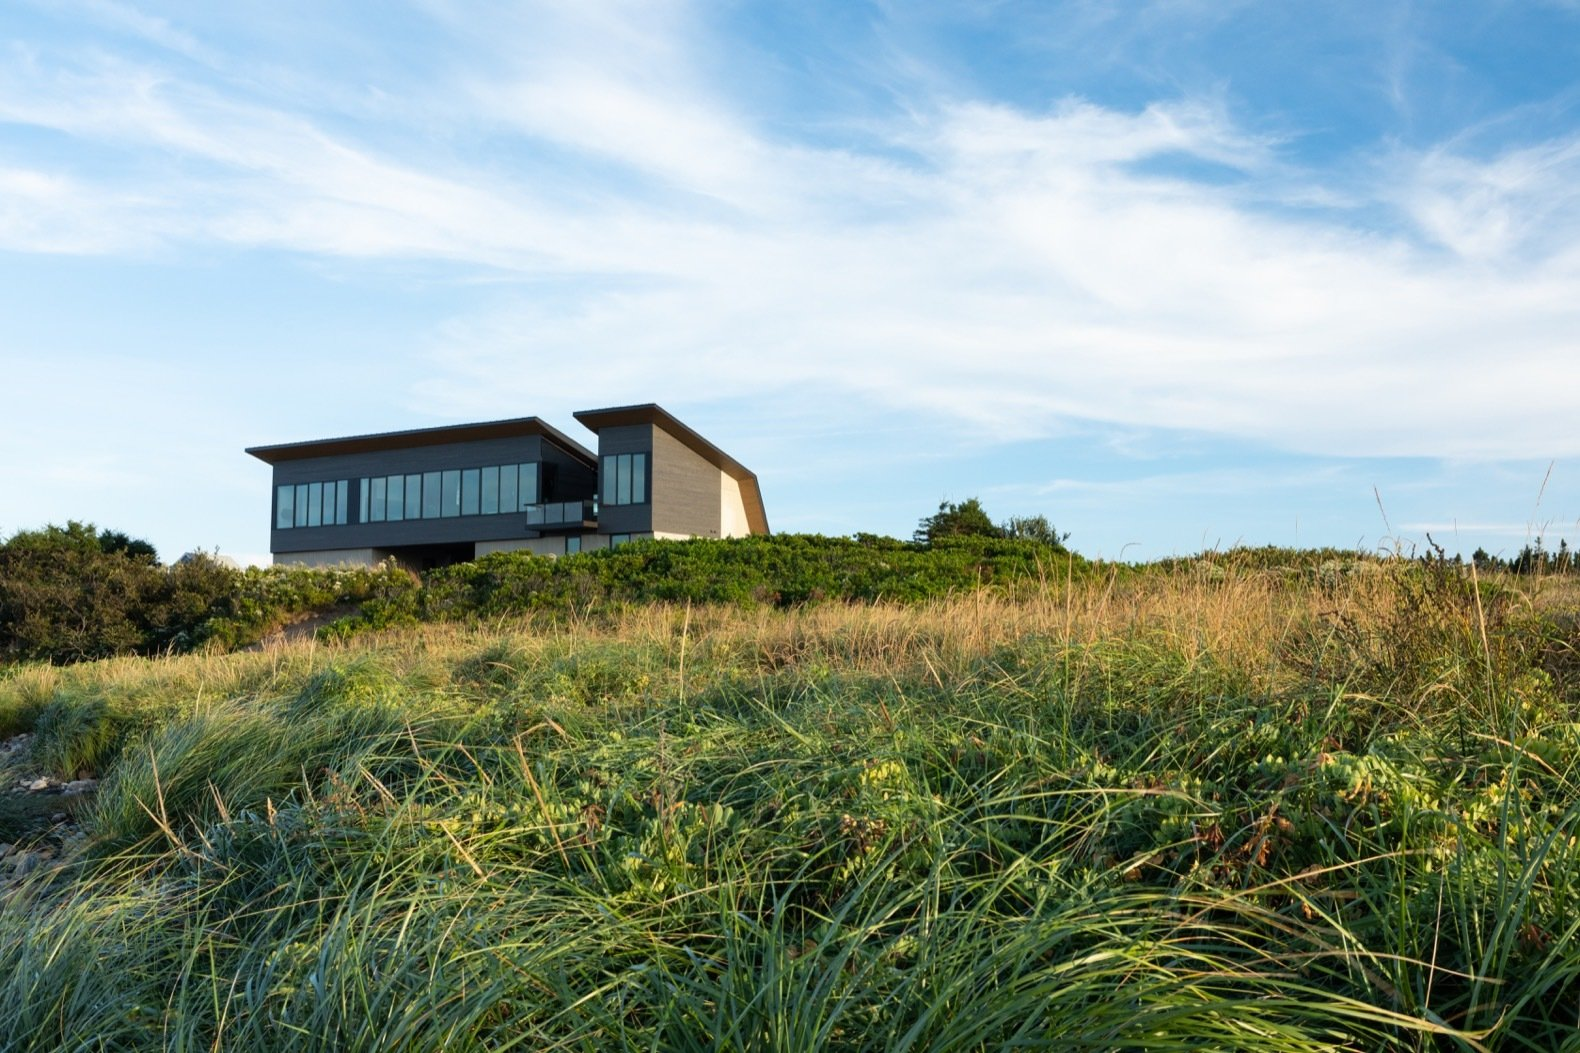 Exterior, Metal, Metal, Concrete, House, Wood, and Saltbox Located on the southern shore of Nova Scotia in Kingsburg, Treow Brycg is set in wild landscape of rocks, the sea, and tall grasses.  Exterior Metal Saltbox Concrete Photos from A Folded Steel Roof Shields a Fortress-Like Abode in Nova Scotia